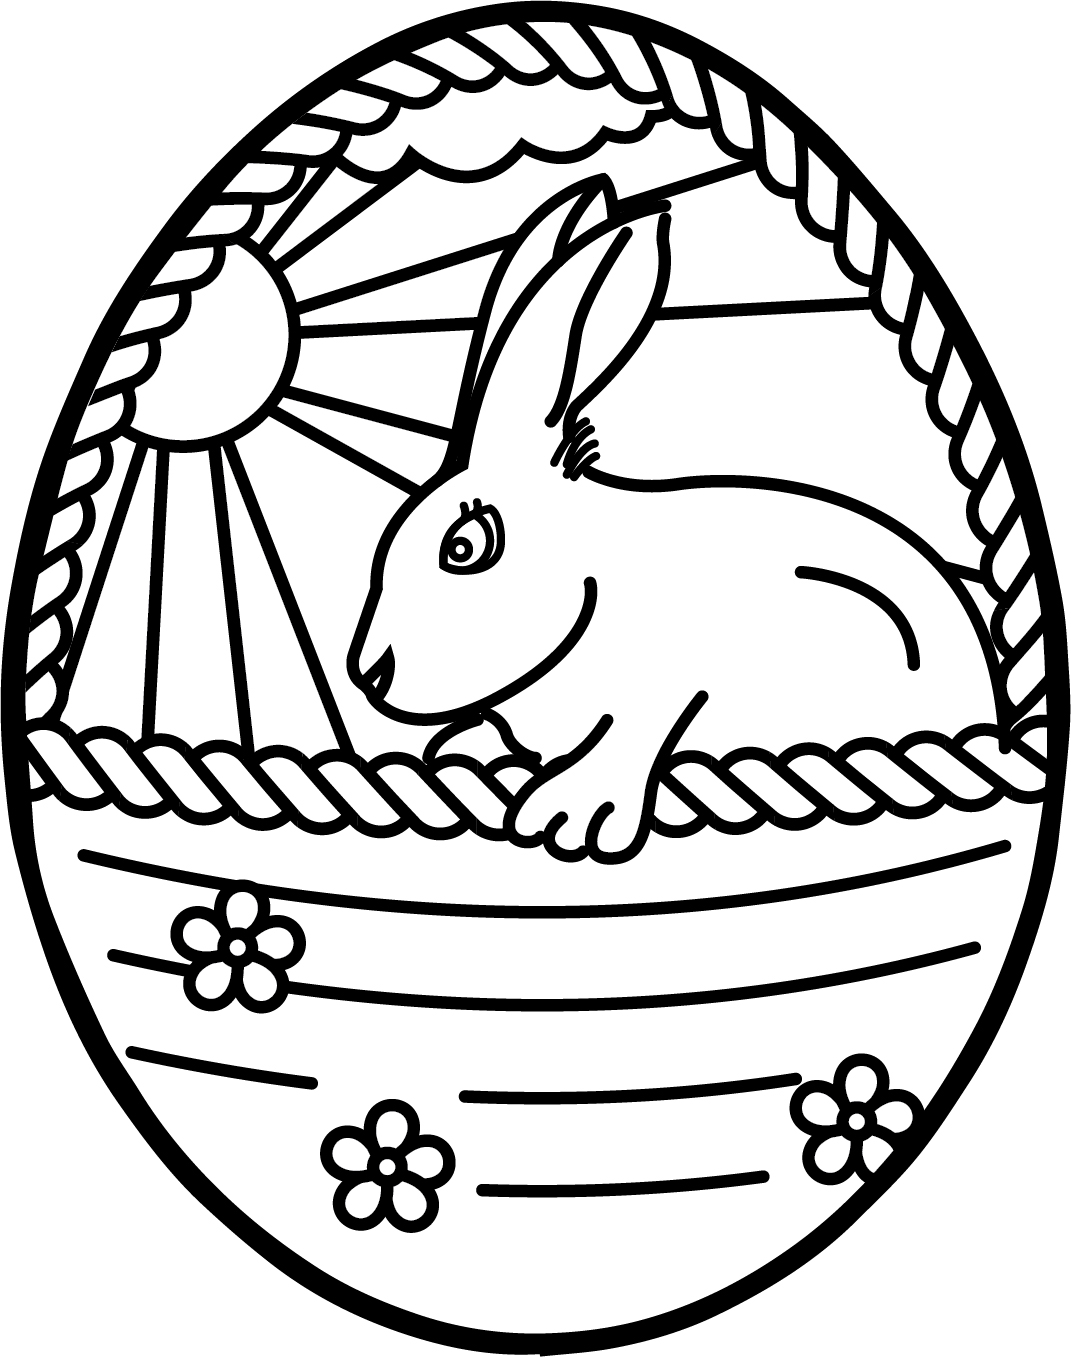 coloring easter egg easter egg coloring pages free printable easter egg easter coloring egg